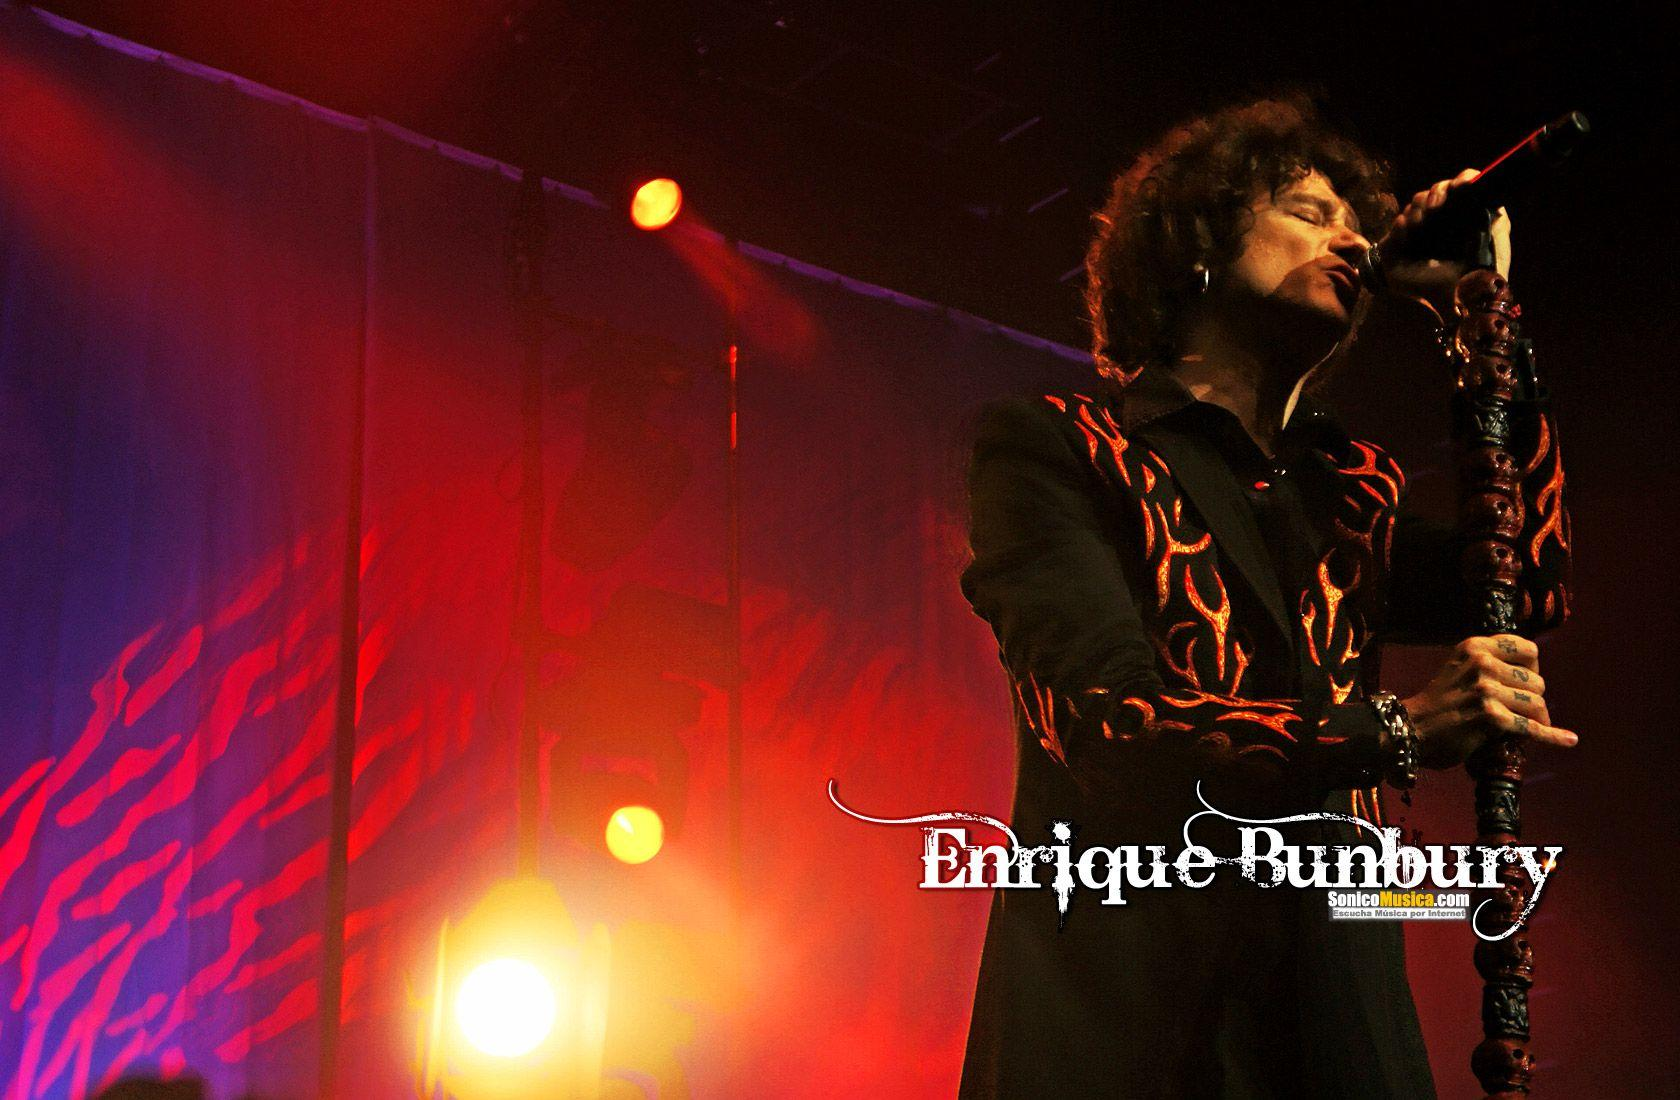 Enrique Bunbury Wallpapers - Wallpaper Cave